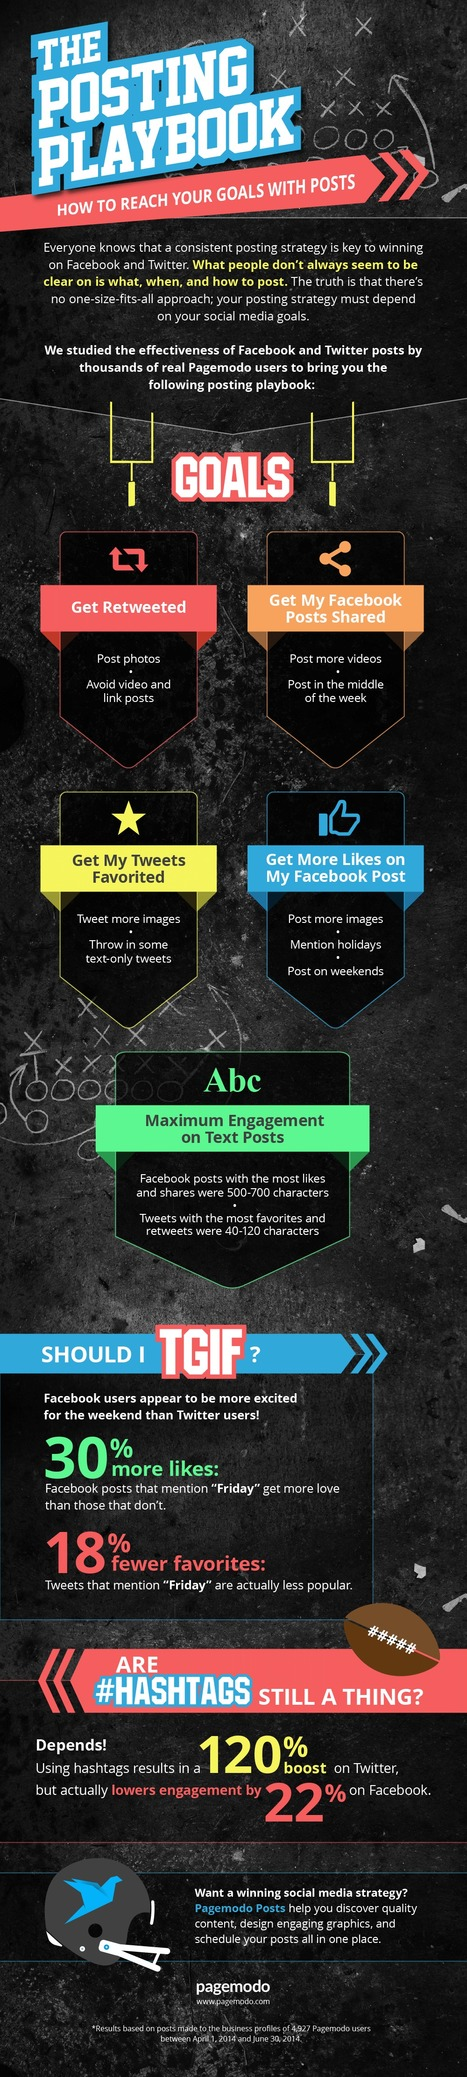 Reach Your Goals With This Social Media Posting Playbook #INFOGRAPHIC | MarketingHits | Scoop.it